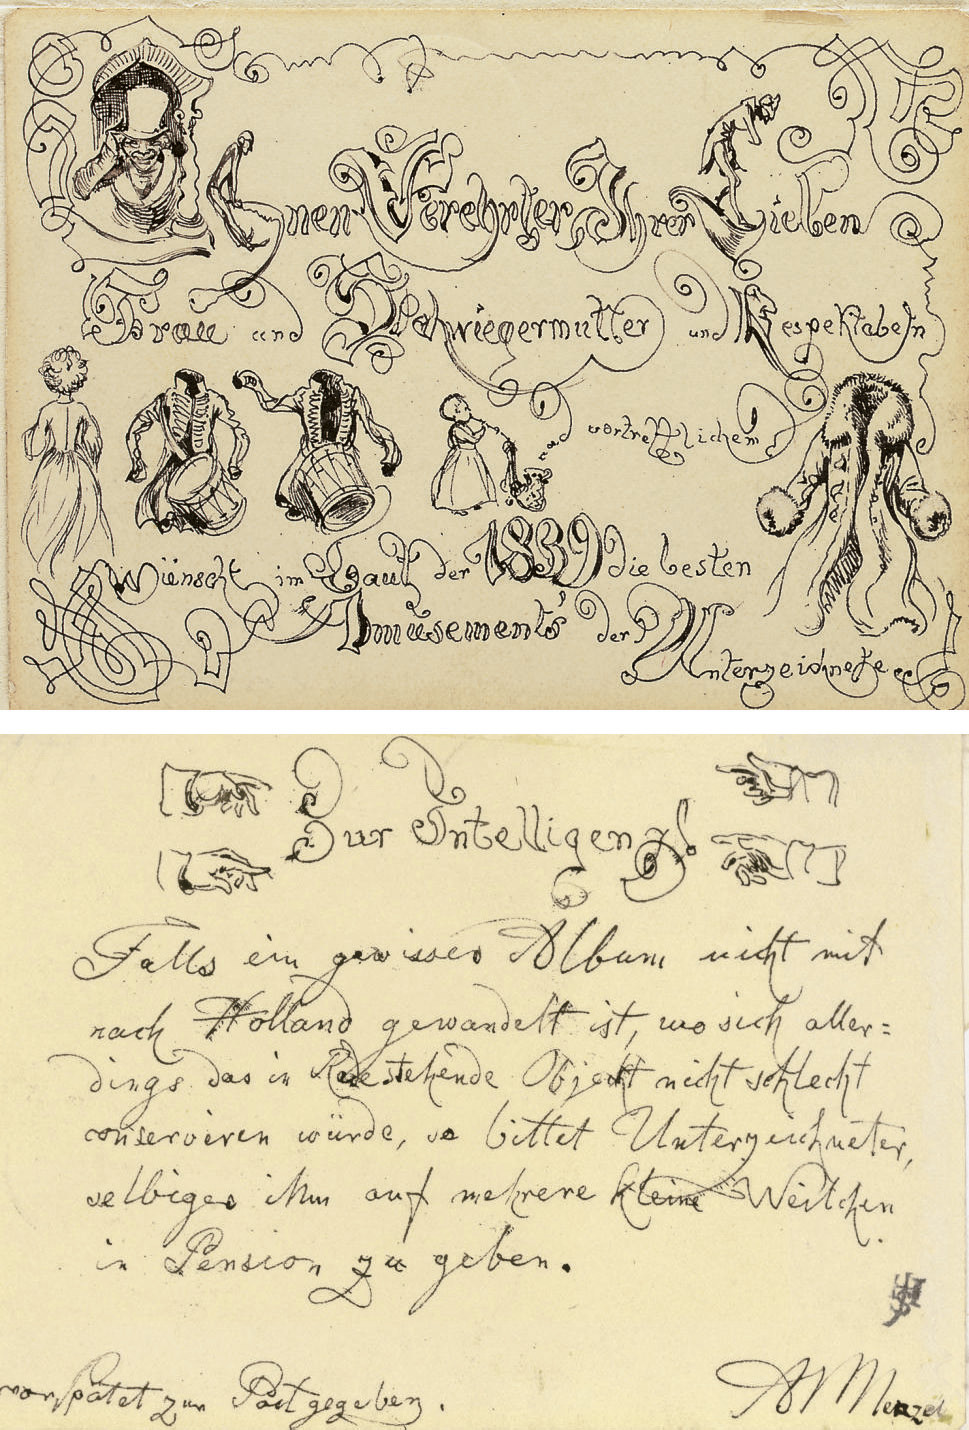 A greeting card from 1839